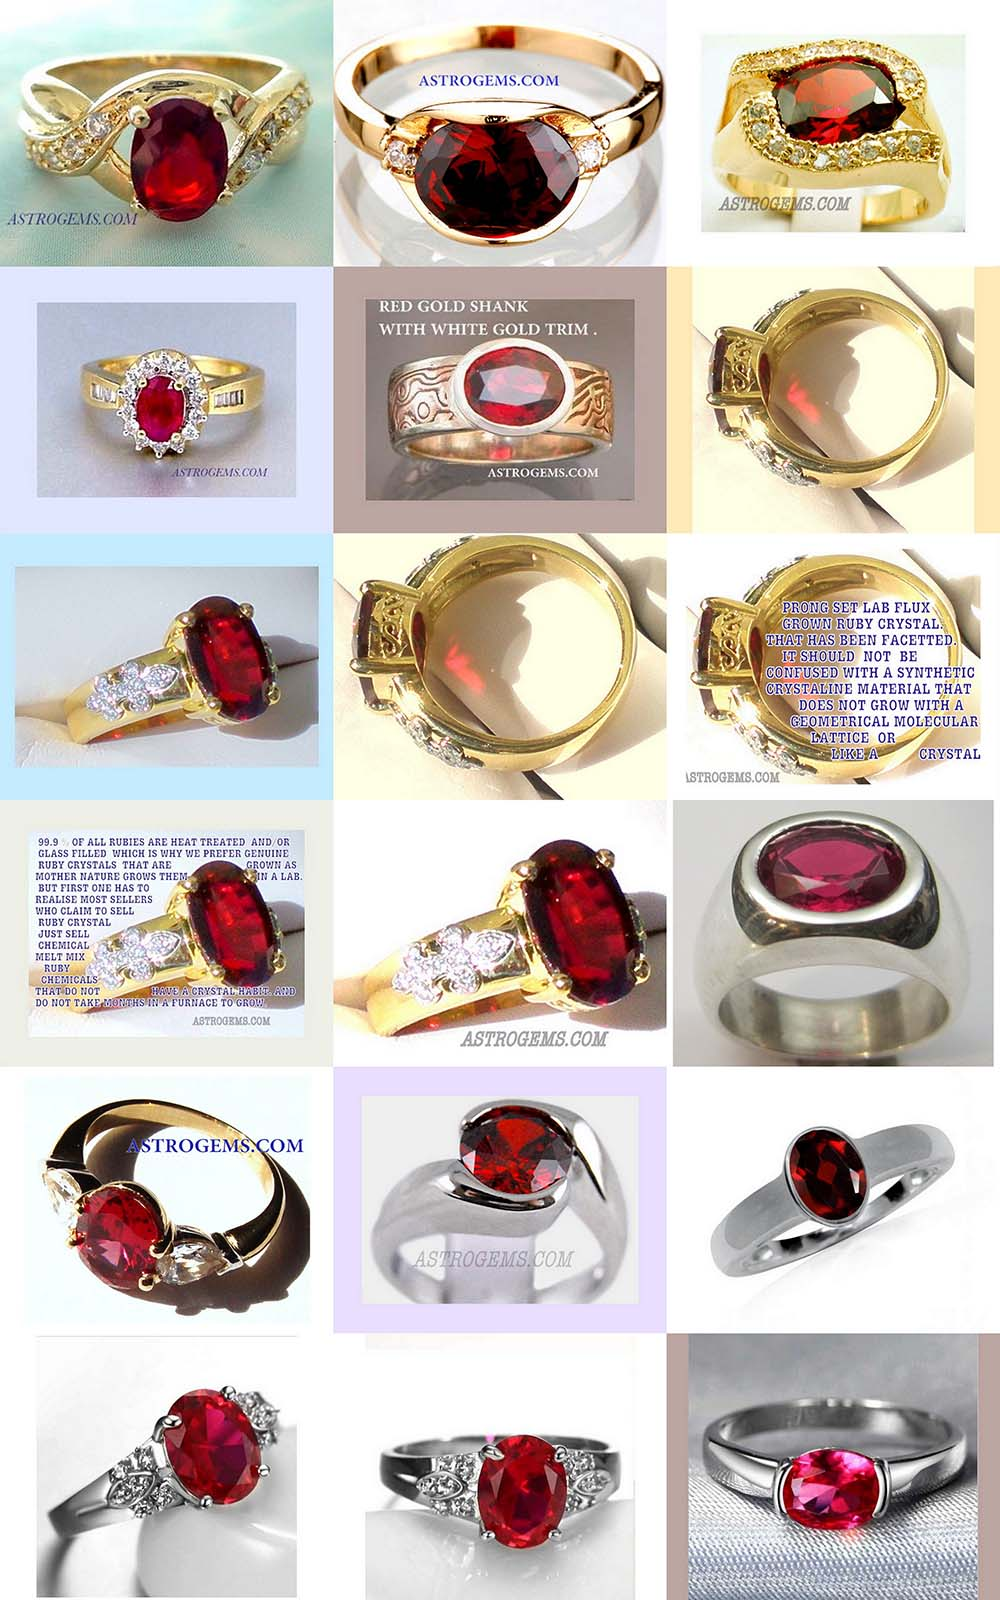 Astrogems can make custom ayurvedic Ruby rings.